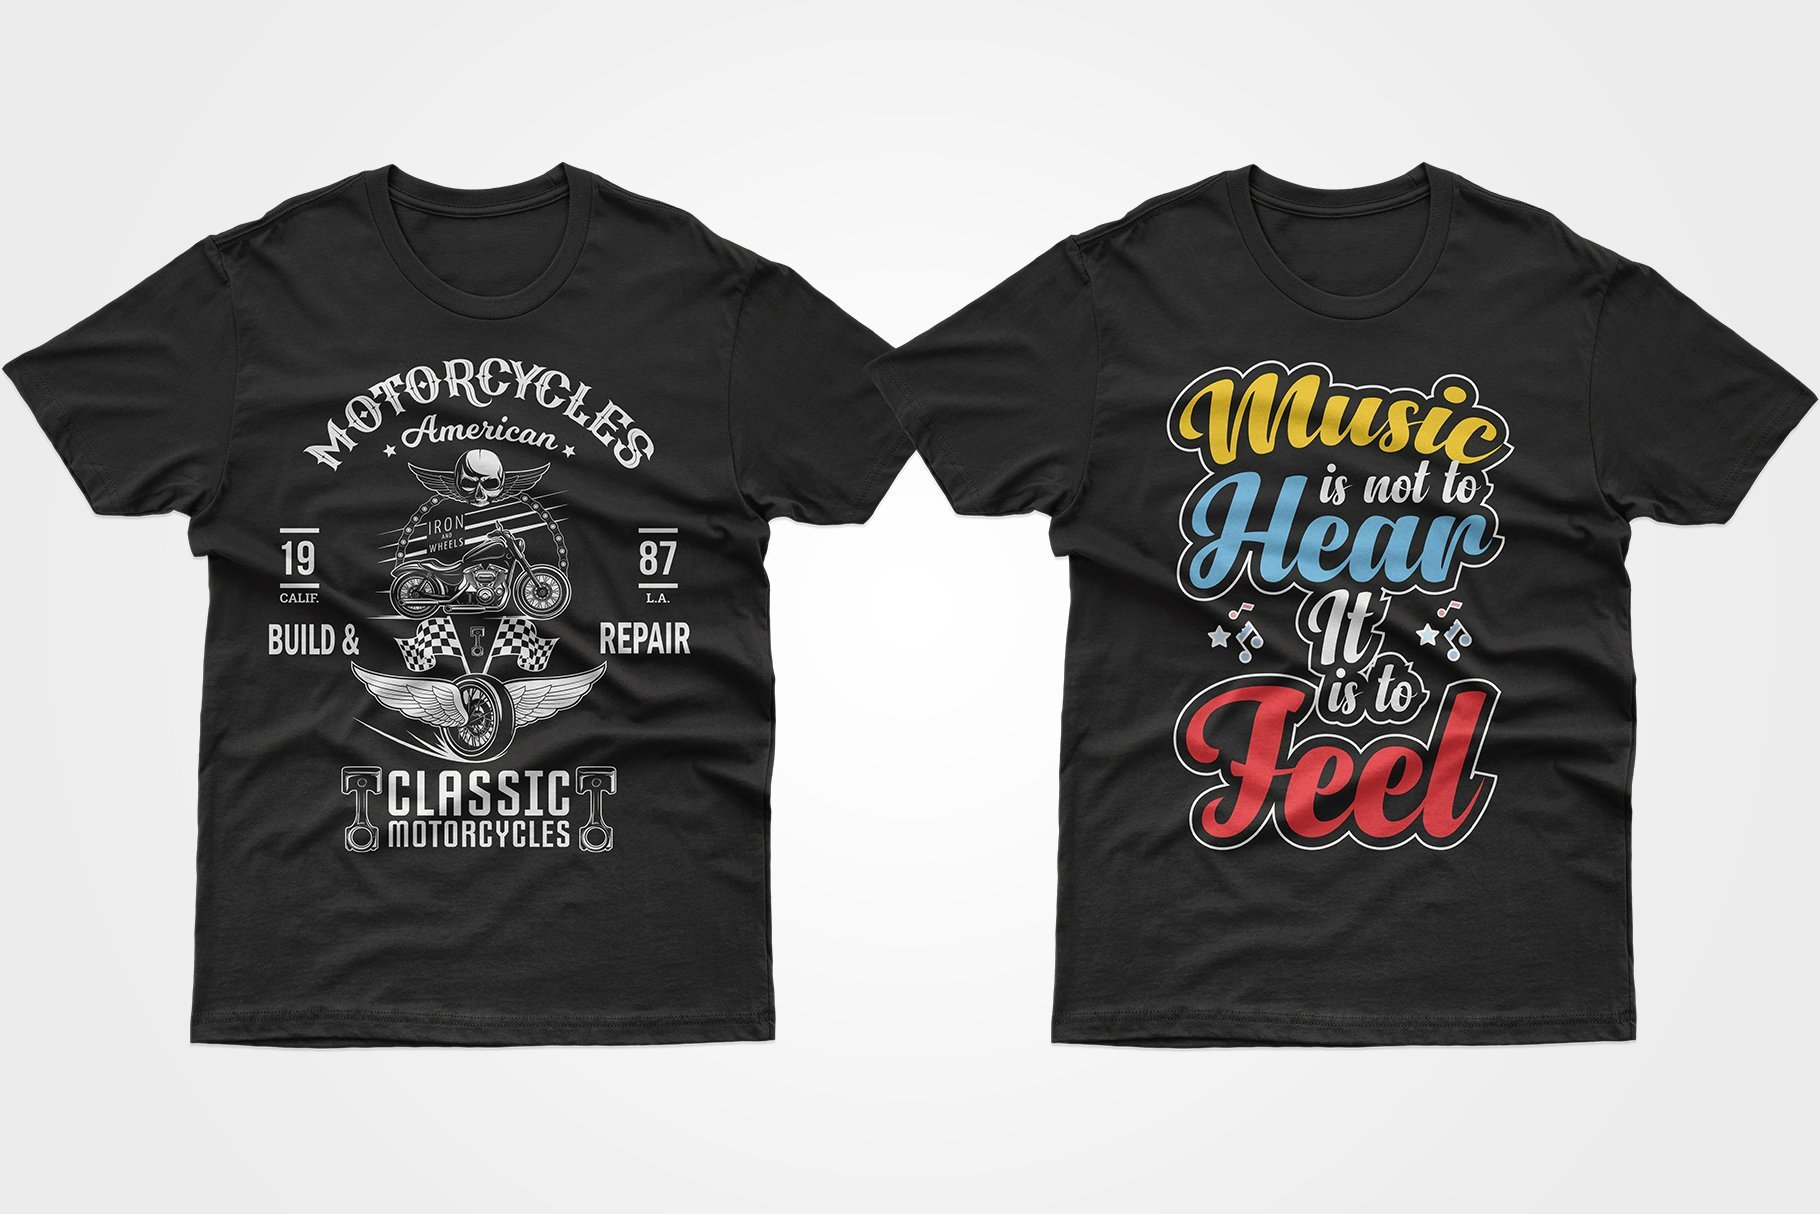 Two black T-shirts - one with a phrase about music, the other with a skull on a motorcycle.